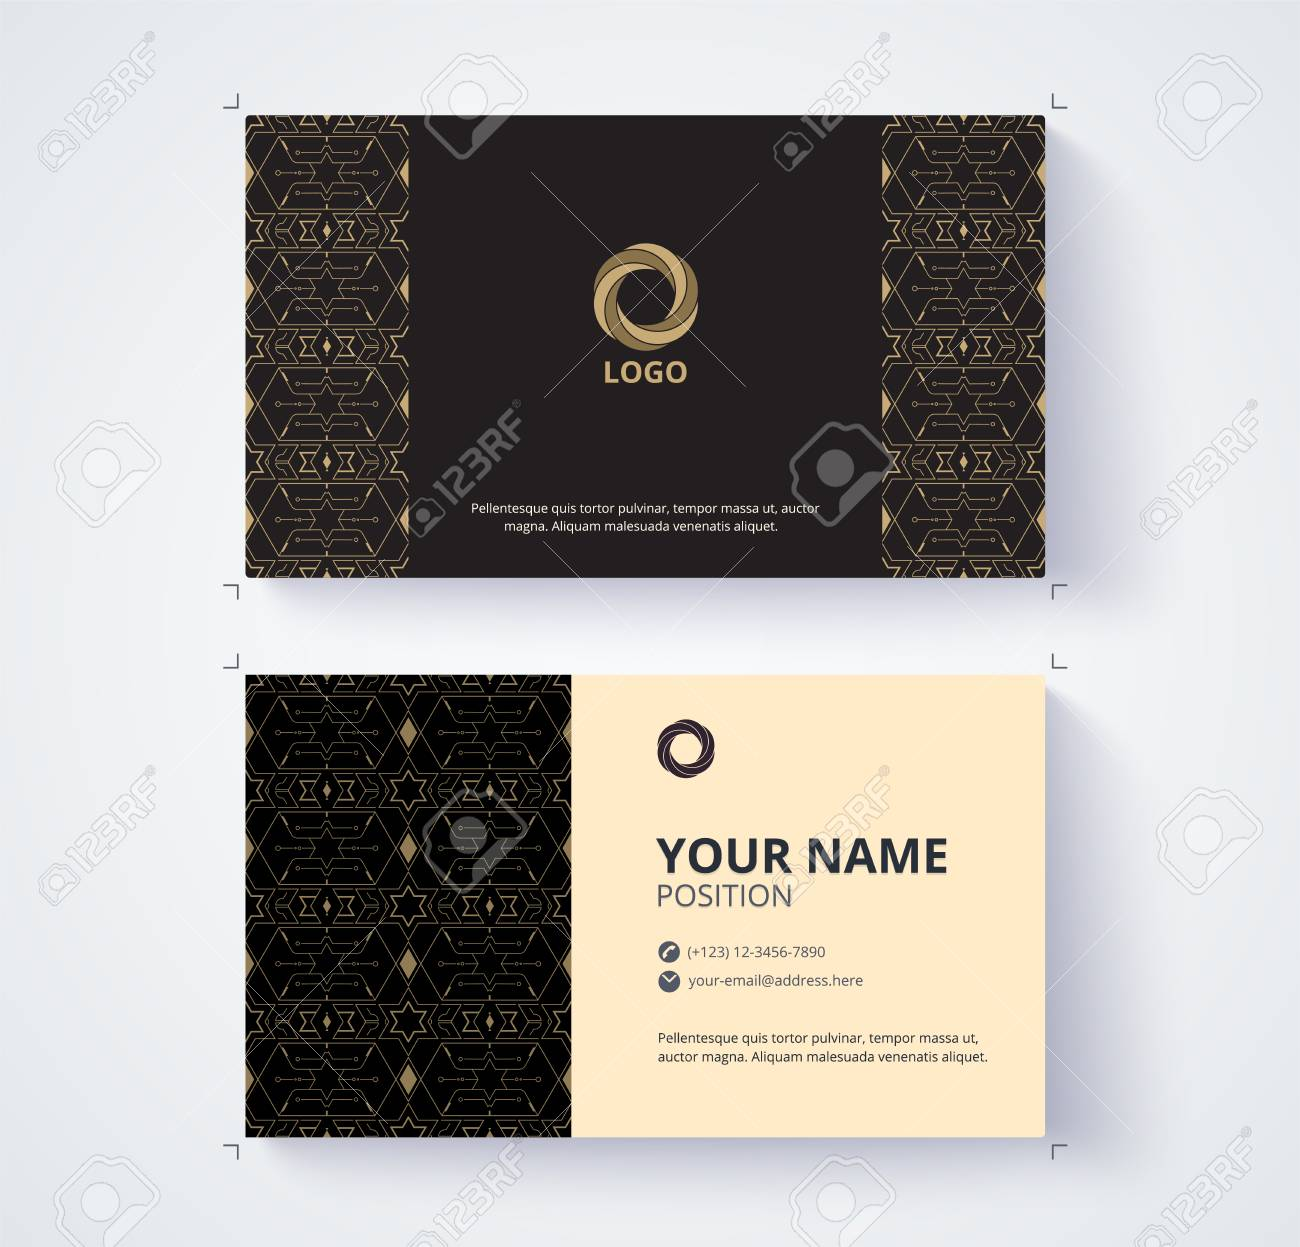 Business Card Template. Example Logo And Text Position. Vector ...